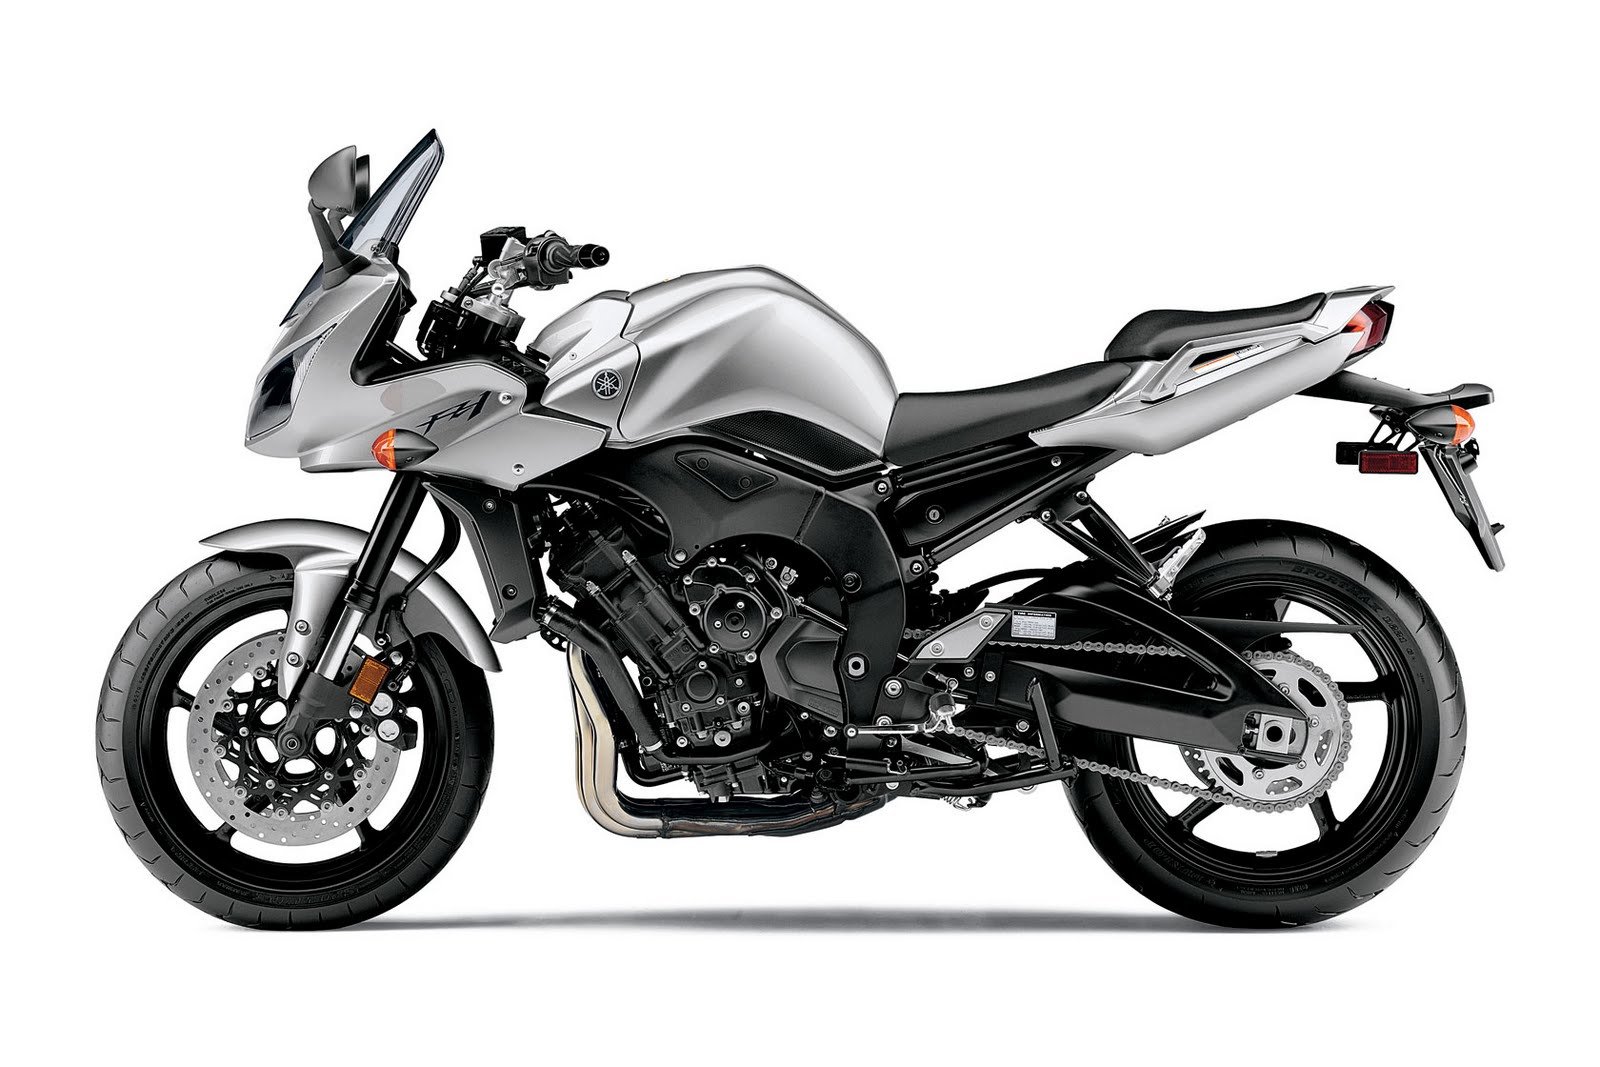 Yamaha fazer white blue images amp pictures becuo - Yamaha Fz1 Hd Wallpaper